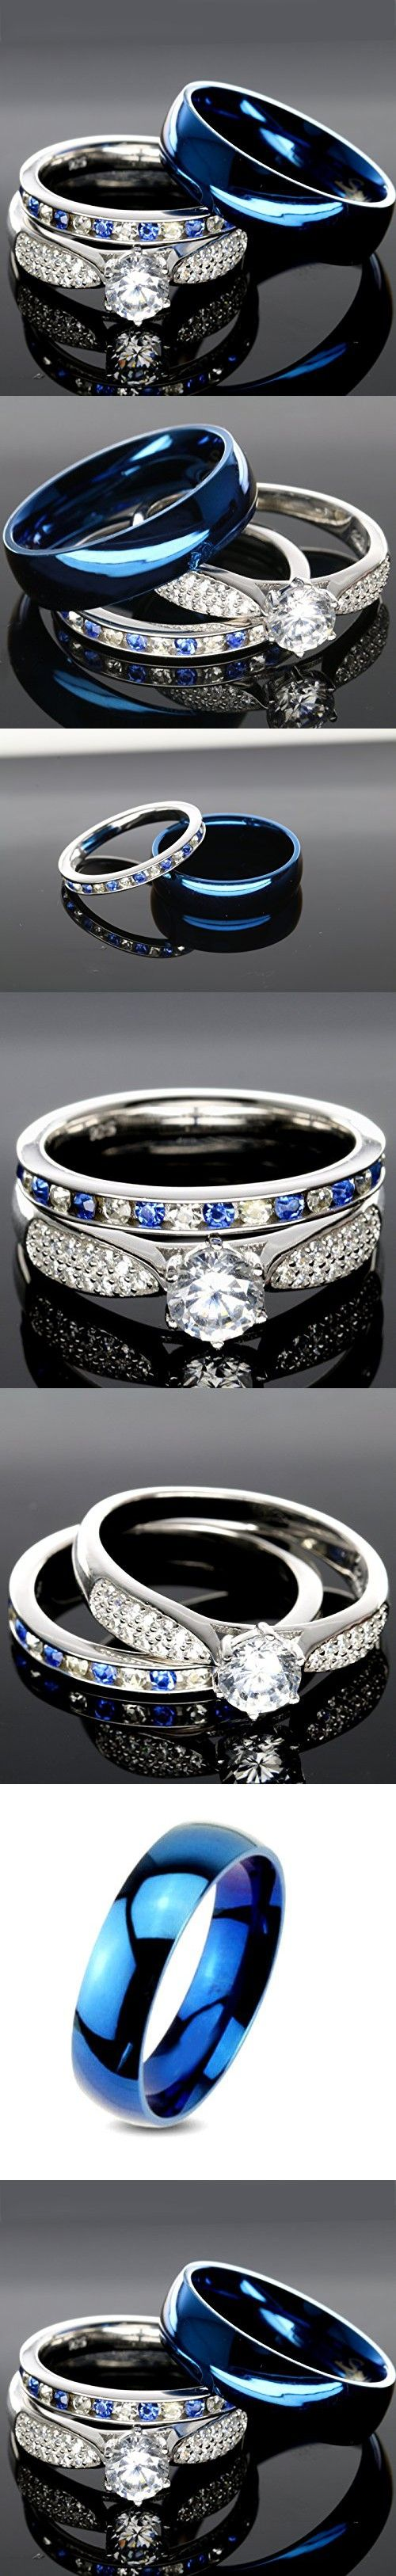 His And Hers 925 Sterling Silver Blue Saphire Stainless Steel Wedding Rings  Set Blue #sp24blmsbl